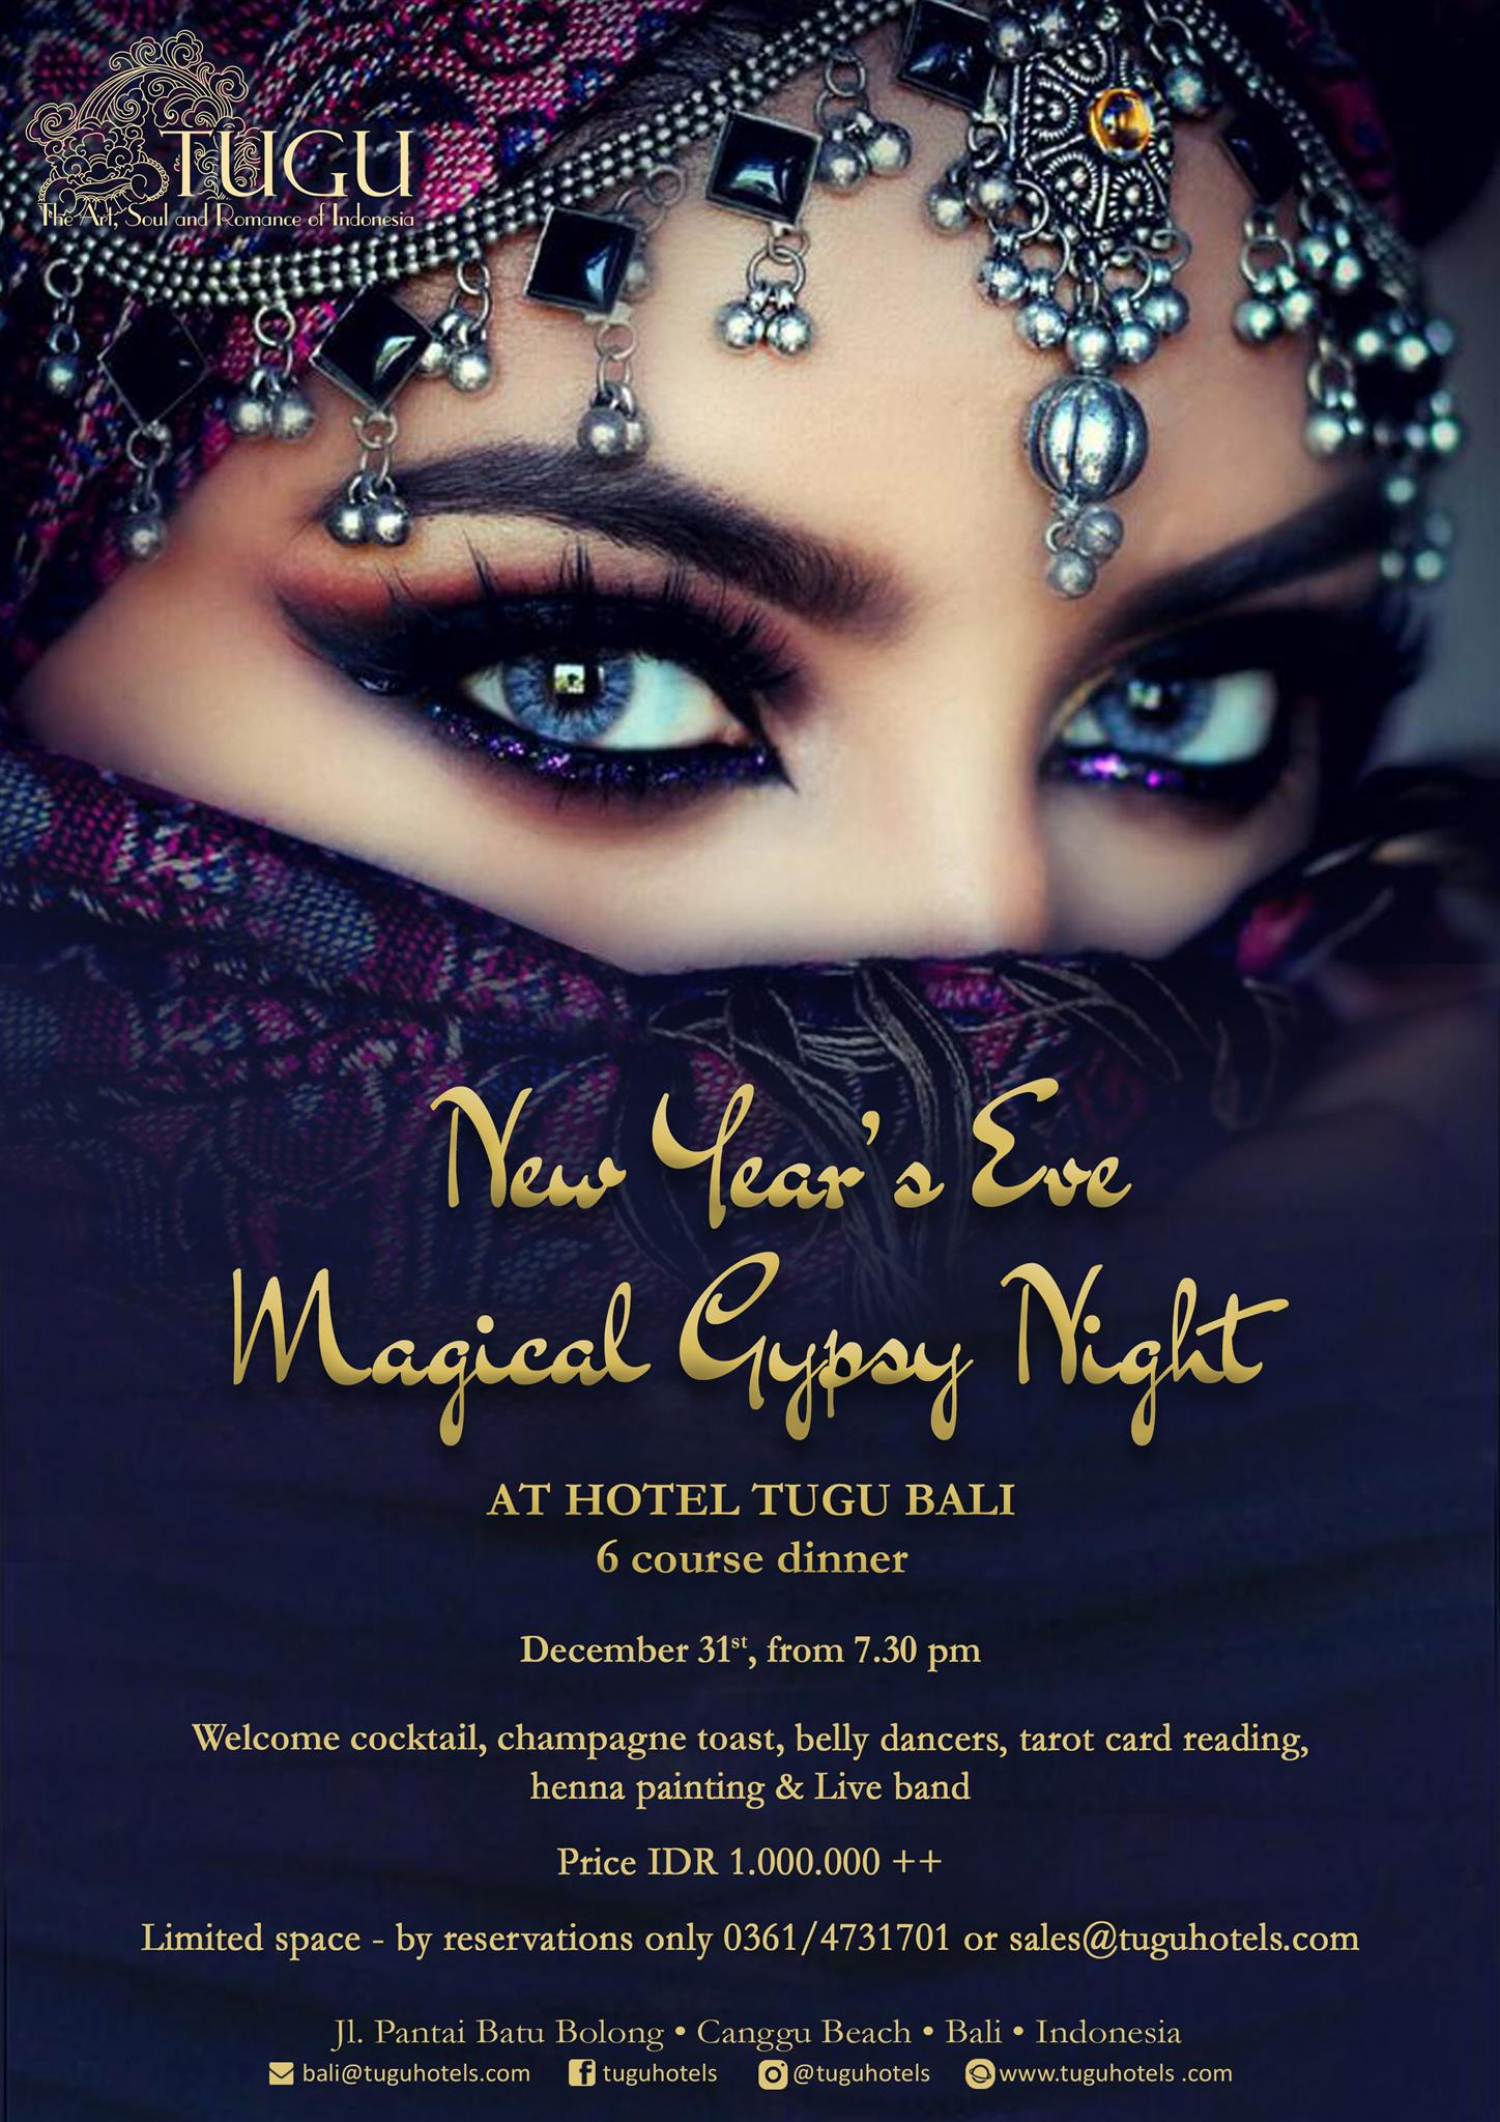 New Year's Eve Magical Gypsy Nomadic Night at Hotel Tugu Bali